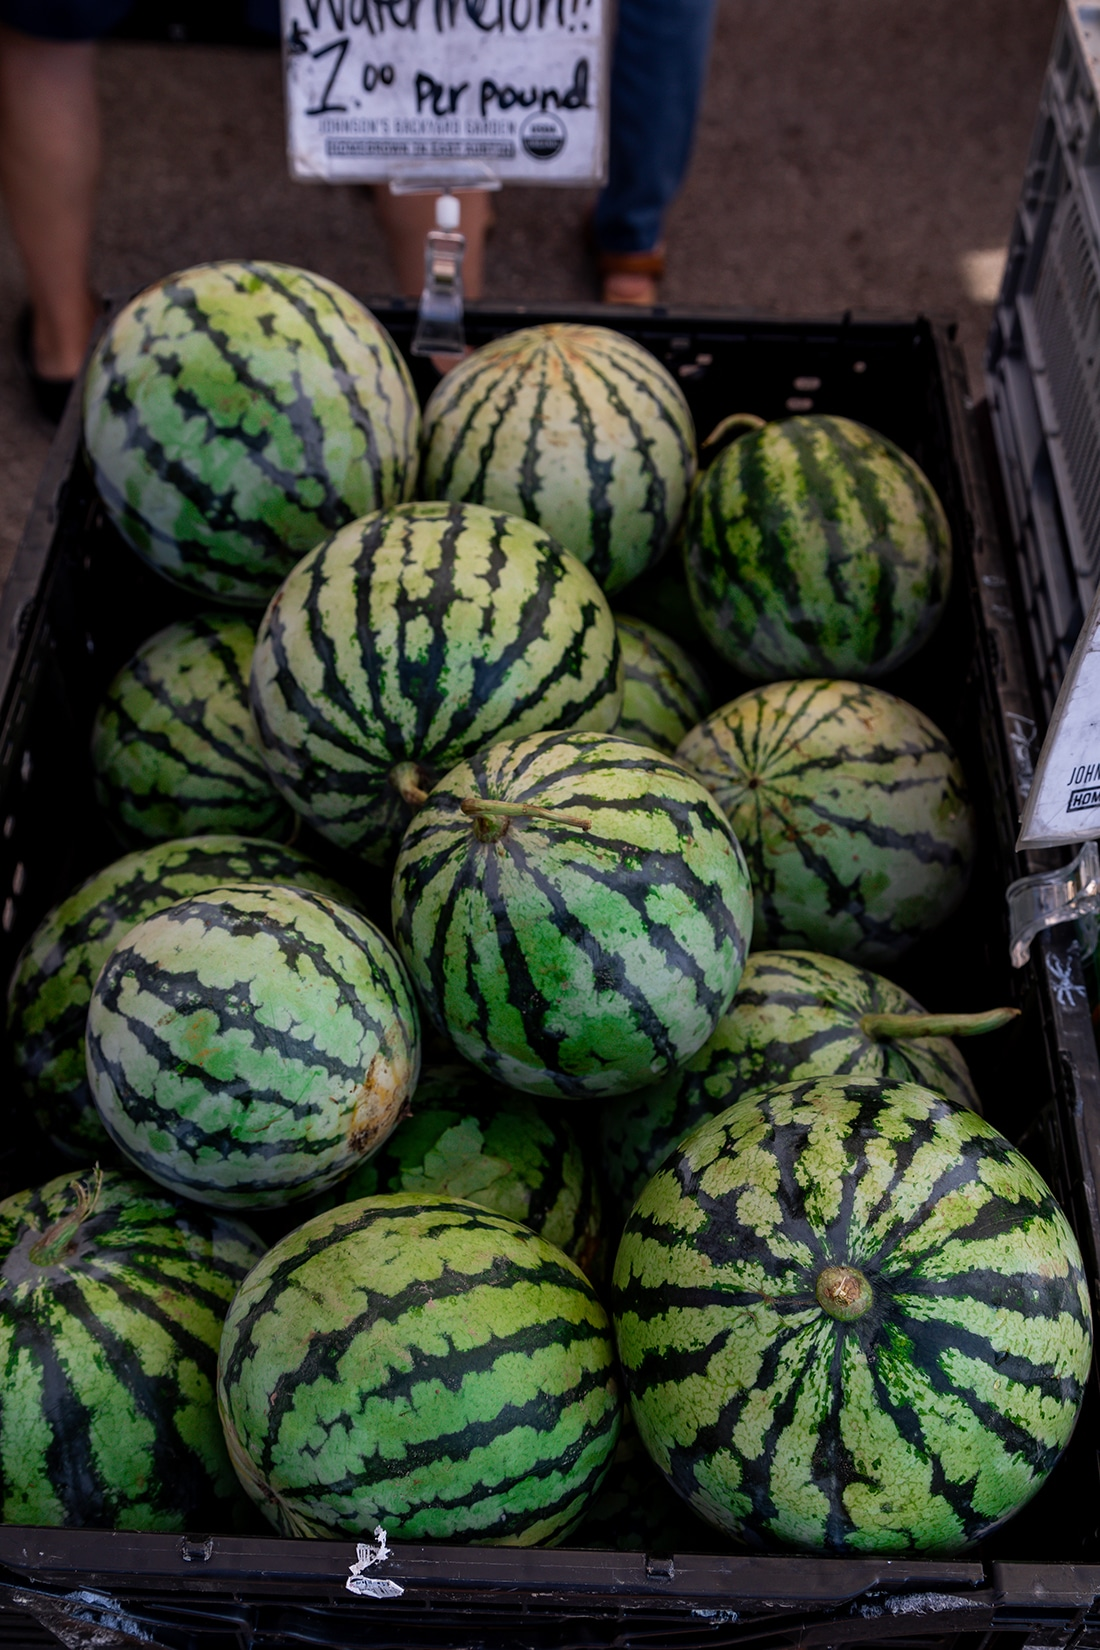 About 20 round melons stacked at a farmers market.